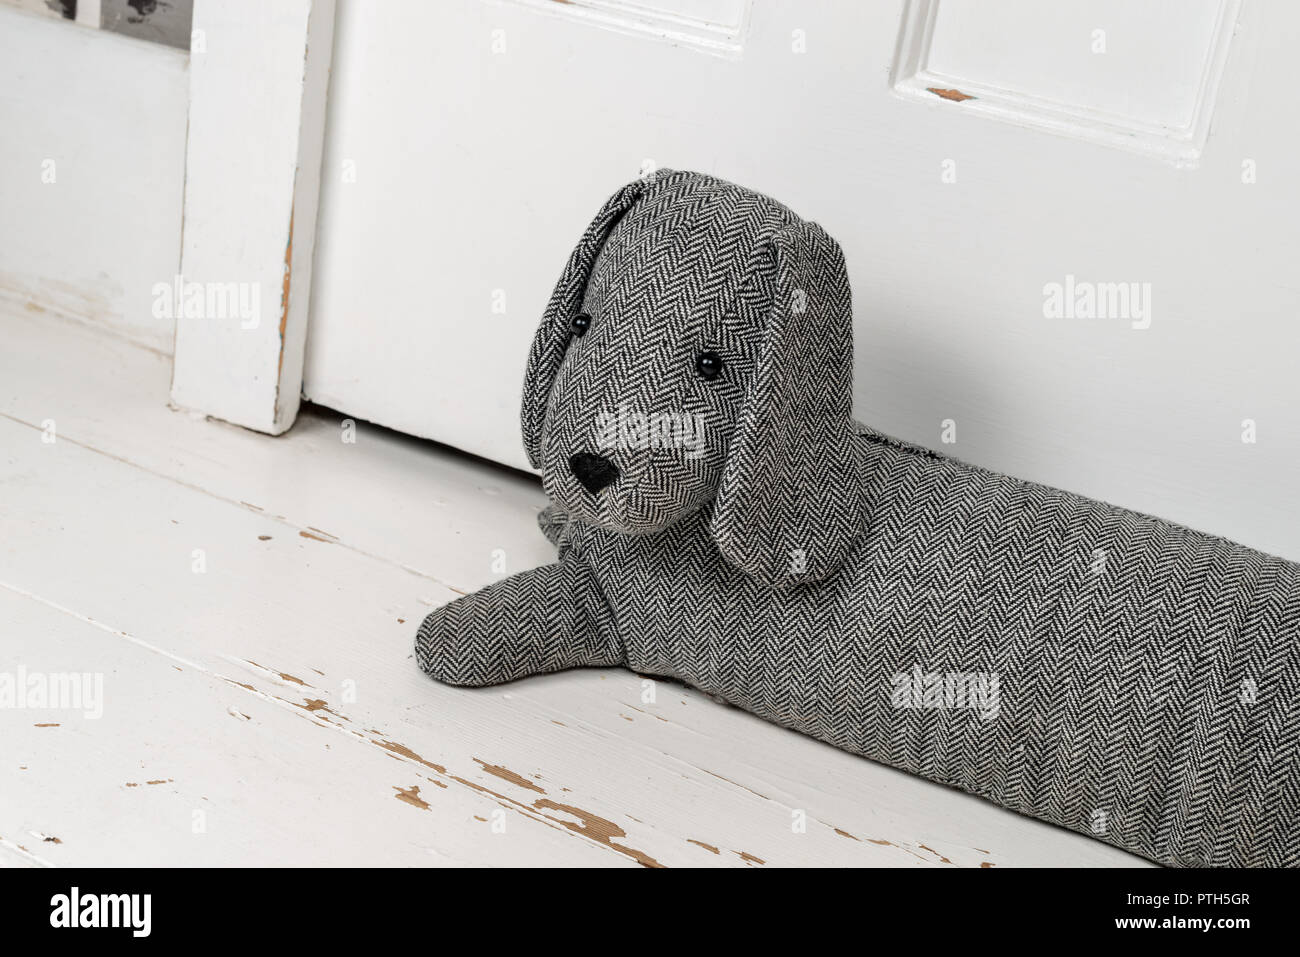 A dog shaped draught excluder on a white painted wooden flloor and in front of a door. - Stock Image